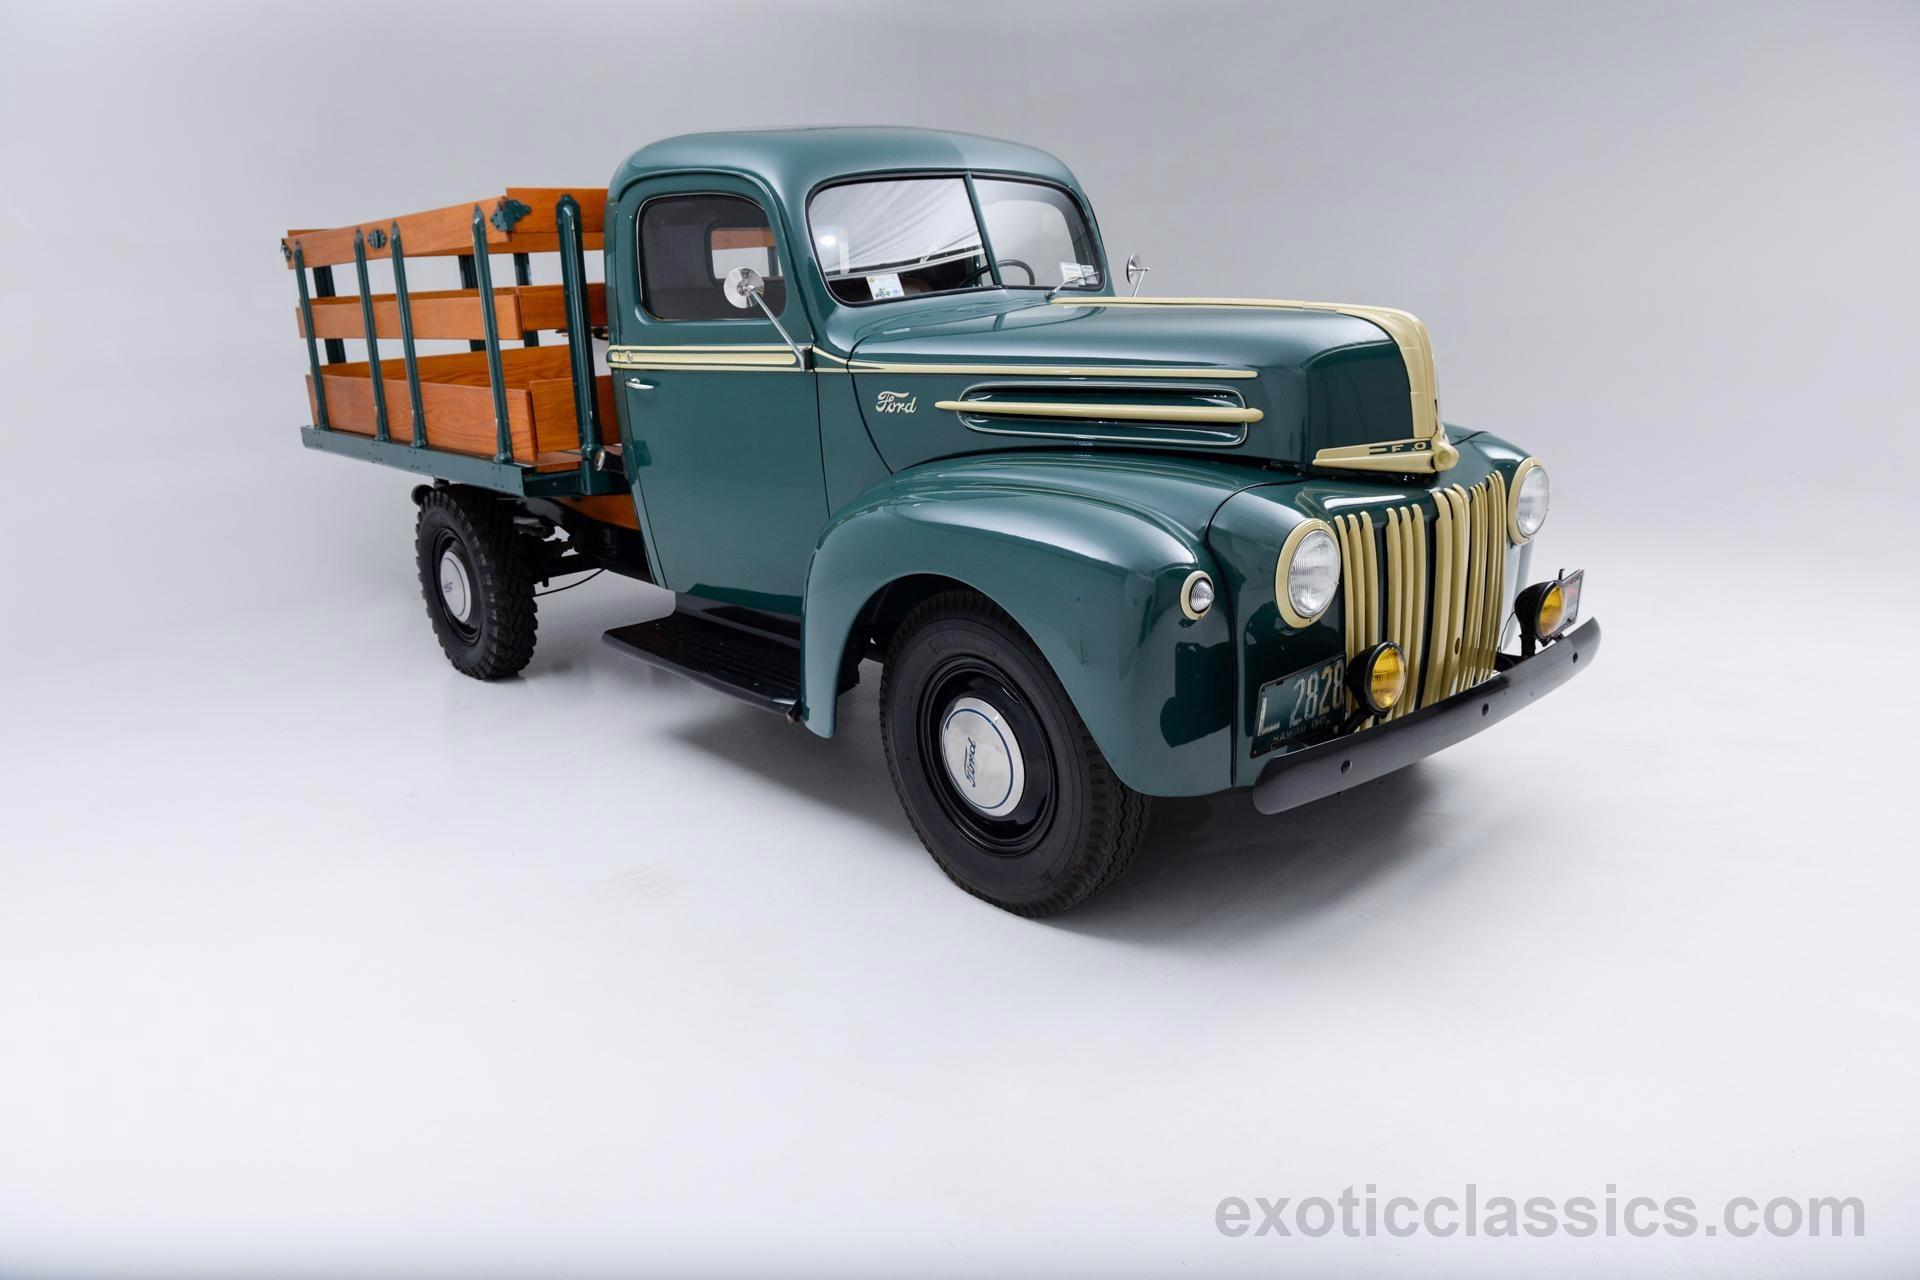 Used Cars Long Island >> 1947 Ford Pickup Stakebed - Champion Motors International l Exotic Classic Car Dealership New ...